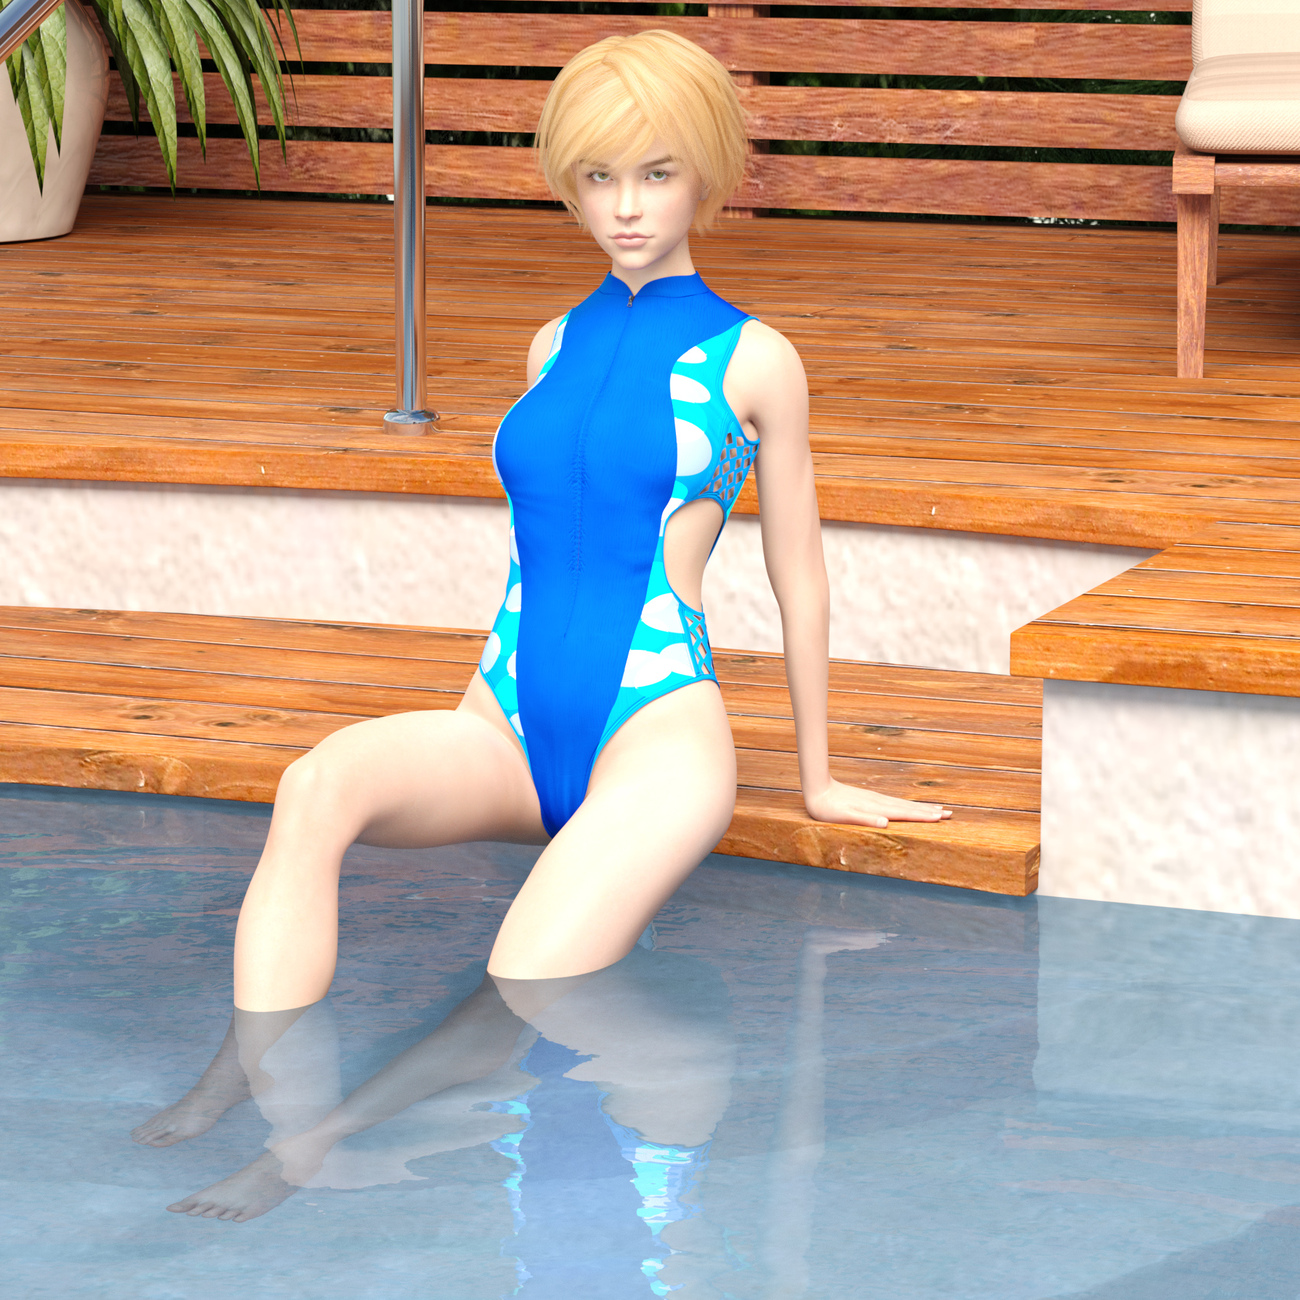 G8F Swimming Pool Deck by x7